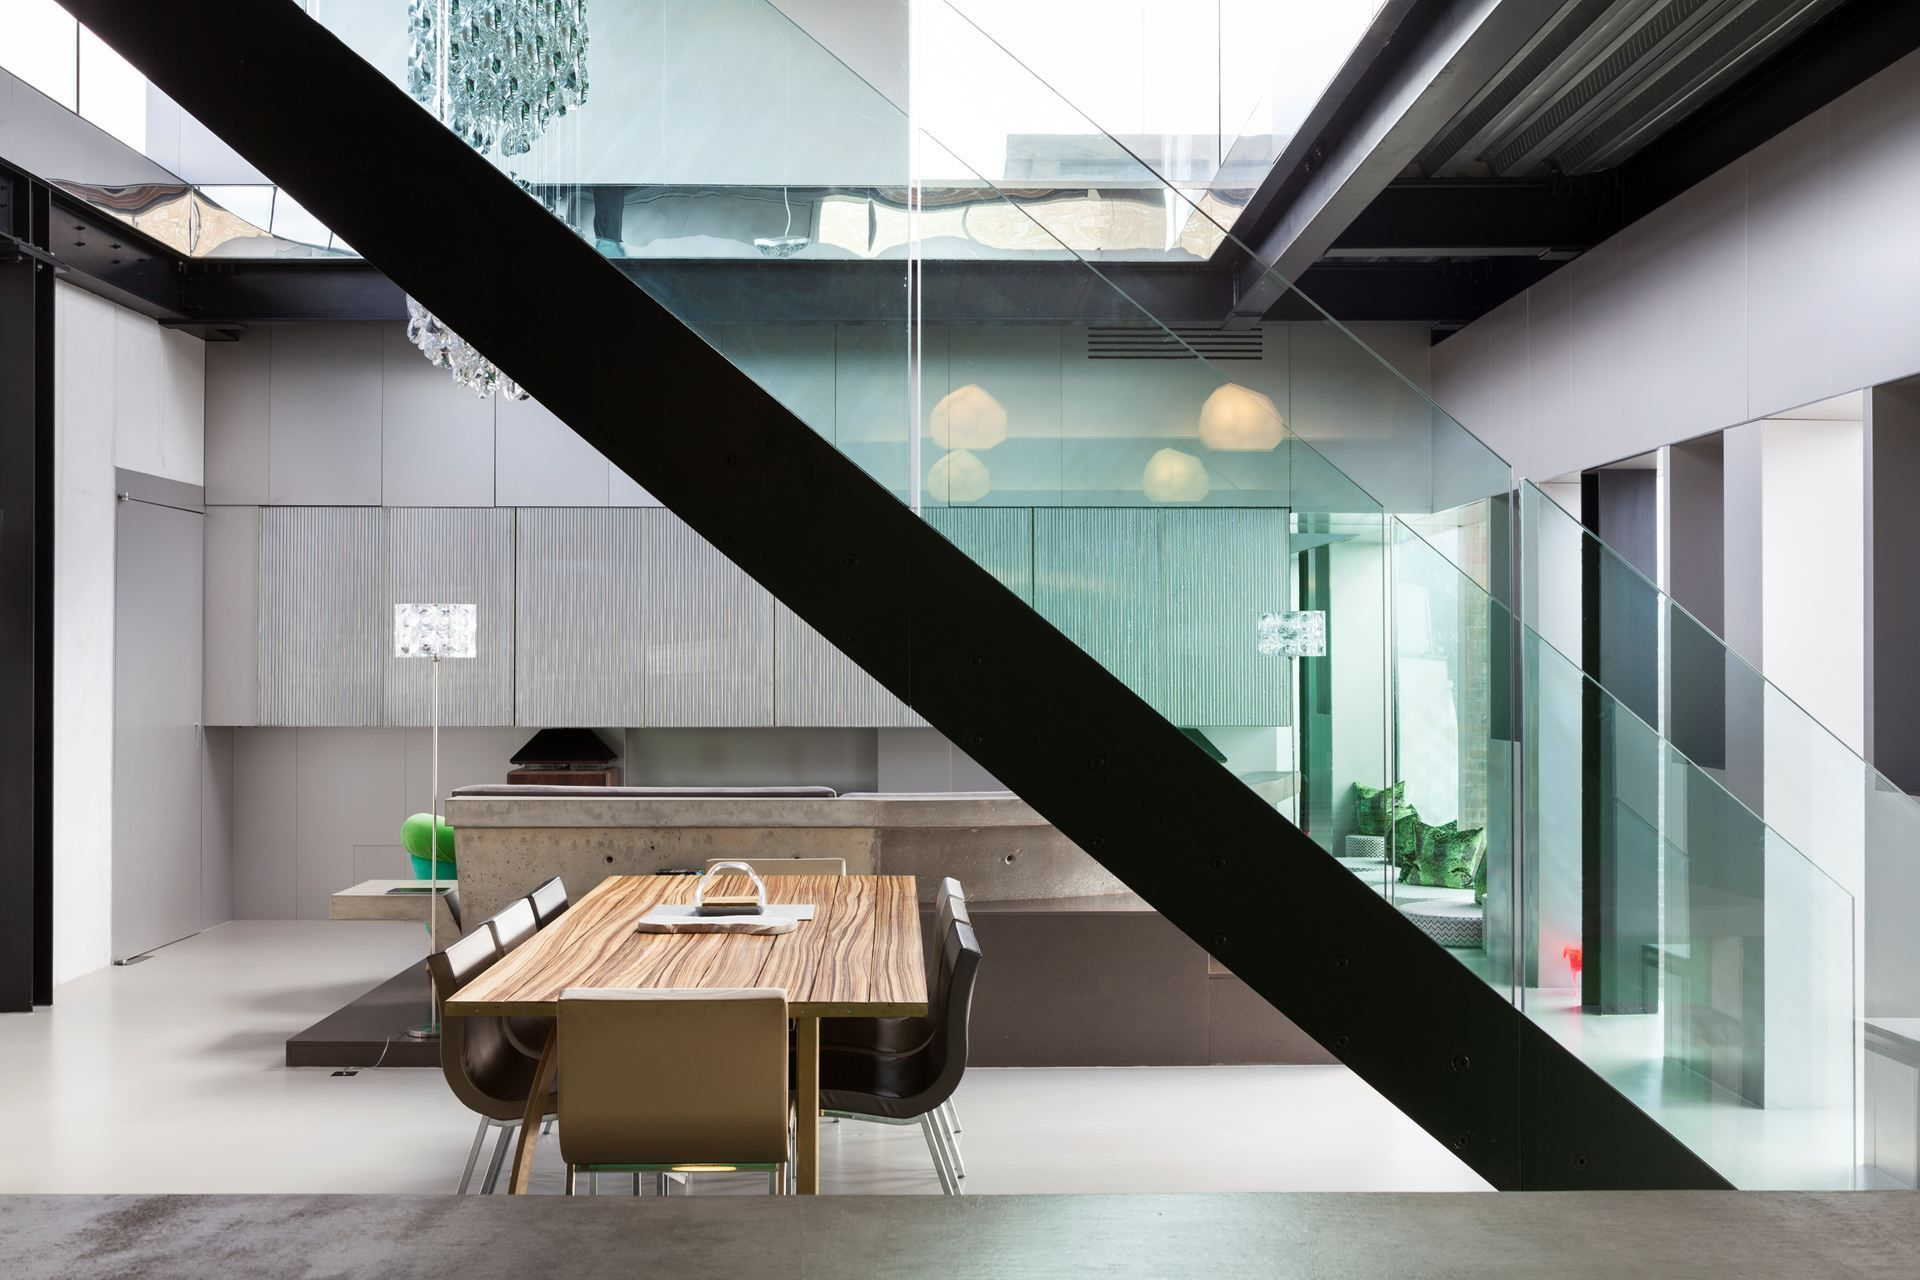 Silverlight by tanzanian born british architect david adjaye the london residence sits on land that what was once host to a victorian style powder puff